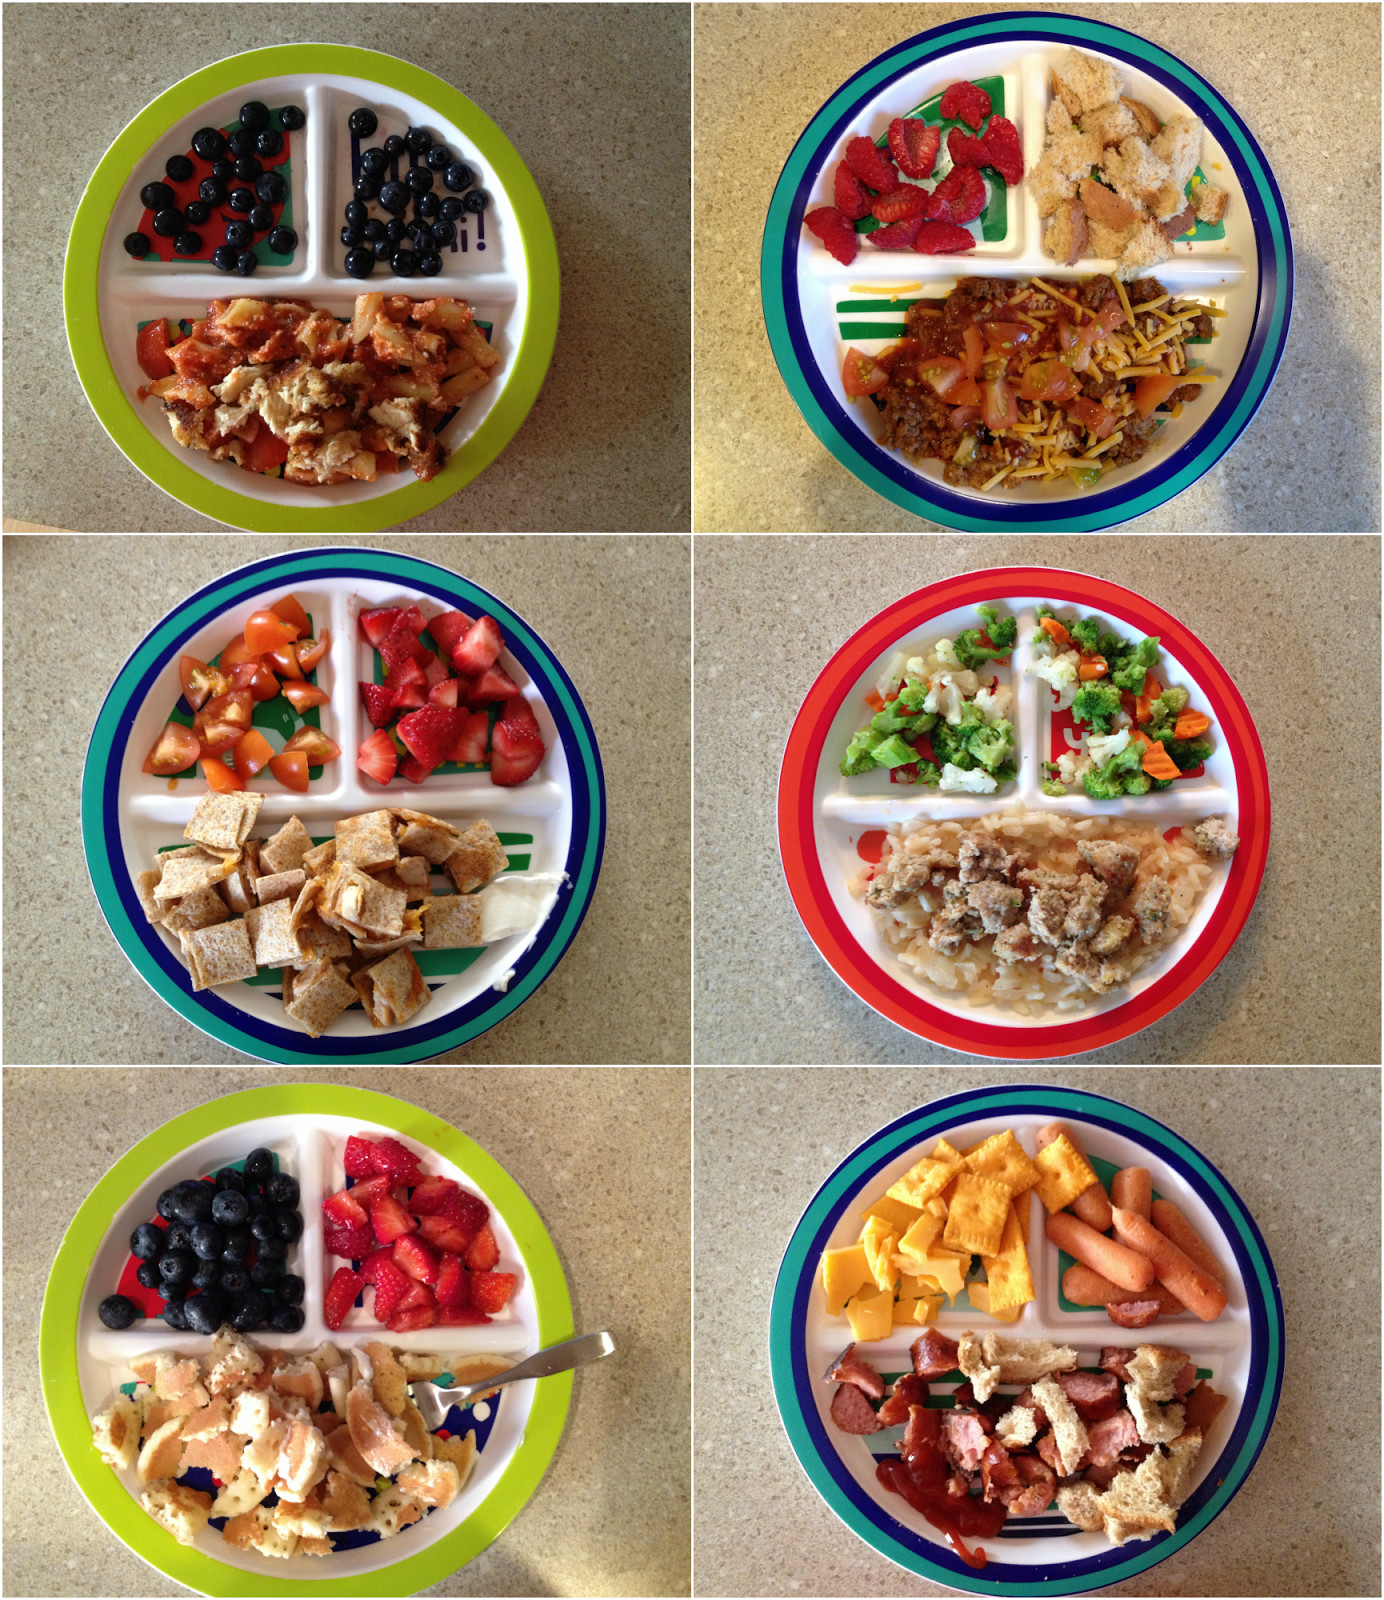 Toddler Dinner Ideas  All The Pretty Things Toddler Meal Ideas Part 2